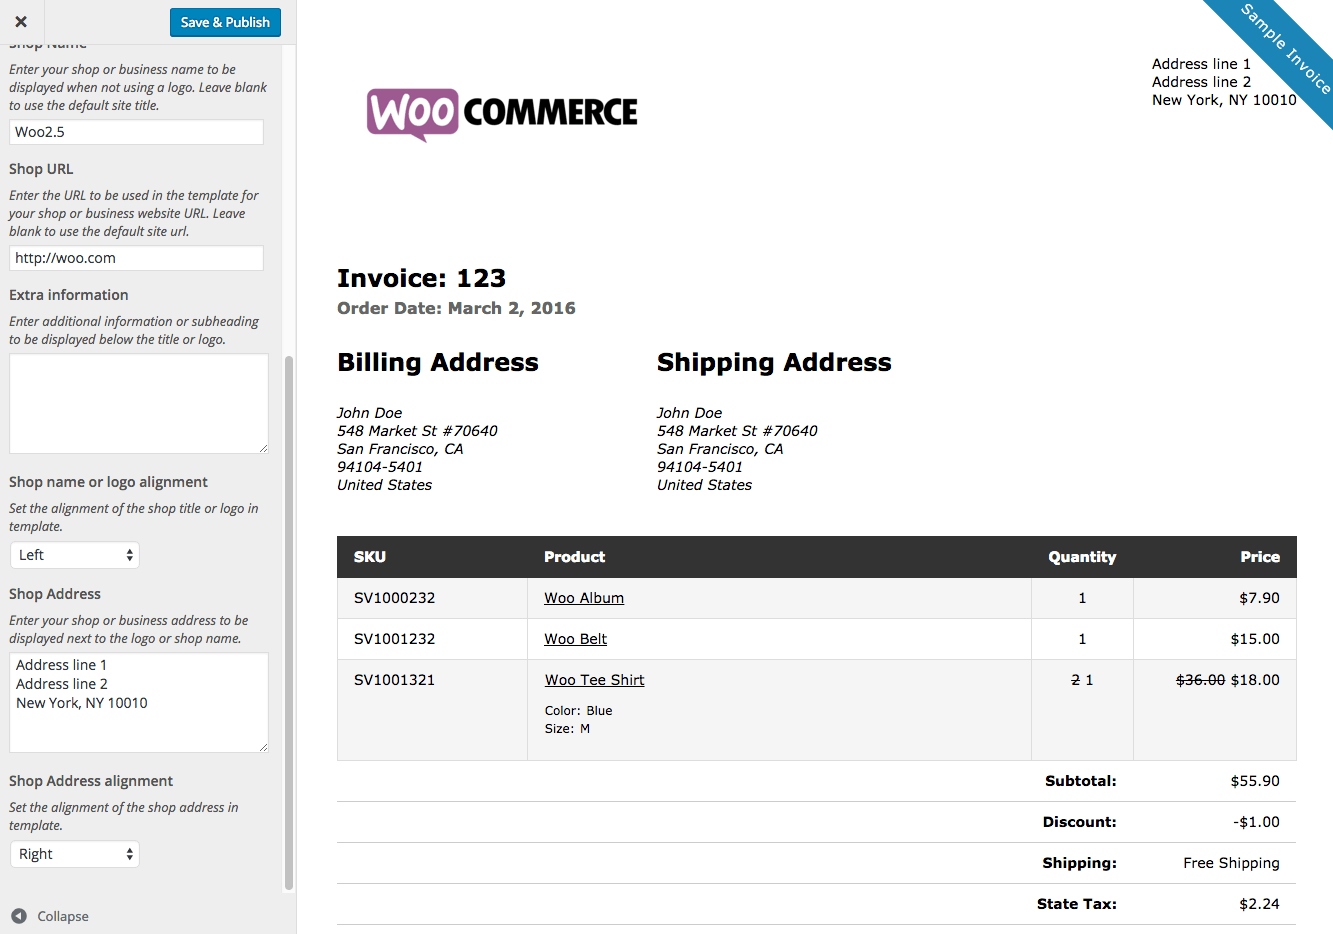 Bringjacobolivierhomeus  Unusual Woocommerce Print Invoices Amp Packing Lists  Woocommerce Docs With Entrancing Woocommerce Print Invoices  Packing Lists Customizer With Awesome Mazda Invoice Also Print Invoices Online In Addition Sample Of Invoices For Services And Invoice Fields As Well As What Is A Shipping Invoice Additionally Invoice By Email From Docswoocommercecom With Bringjacobolivierhomeus  Entrancing Woocommerce Print Invoices Amp Packing Lists  Woocommerce Docs With Awesome Woocommerce Print Invoices  Packing Lists Customizer And Unusual Mazda Invoice Also Print Invoices Online In Addition Sample Of Invoices For Services From Docswoocommercecom